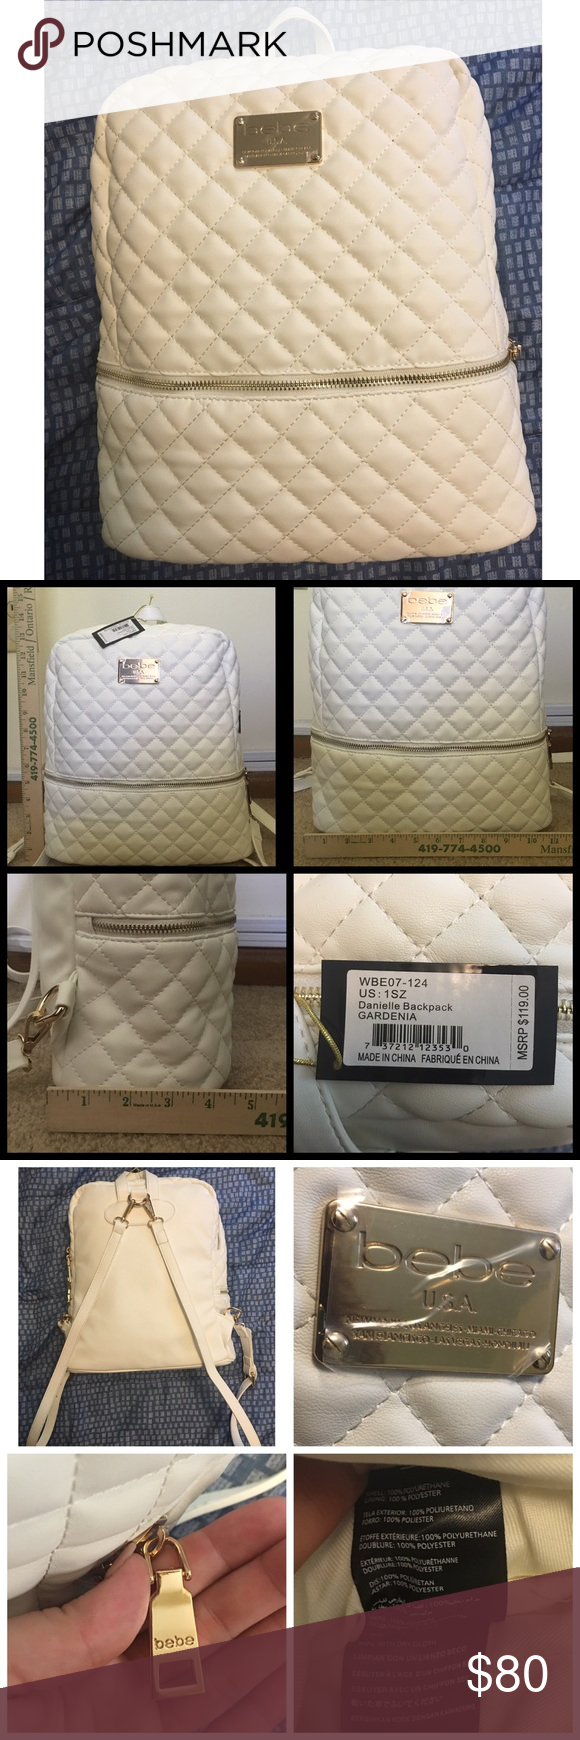 """☀️NWT BEBE """"Danielle"""" Backpack •Approx. 15"""" tall / 11"""" across / approx. 4-4.5"""" wide •Color: White & Gold •Has removable, adjustable straps and has several compartments •Shell: 100% Polyurethane / Lining: 100% Polyester •NWT with no defects •No trades bebe Bags Backpacks"""